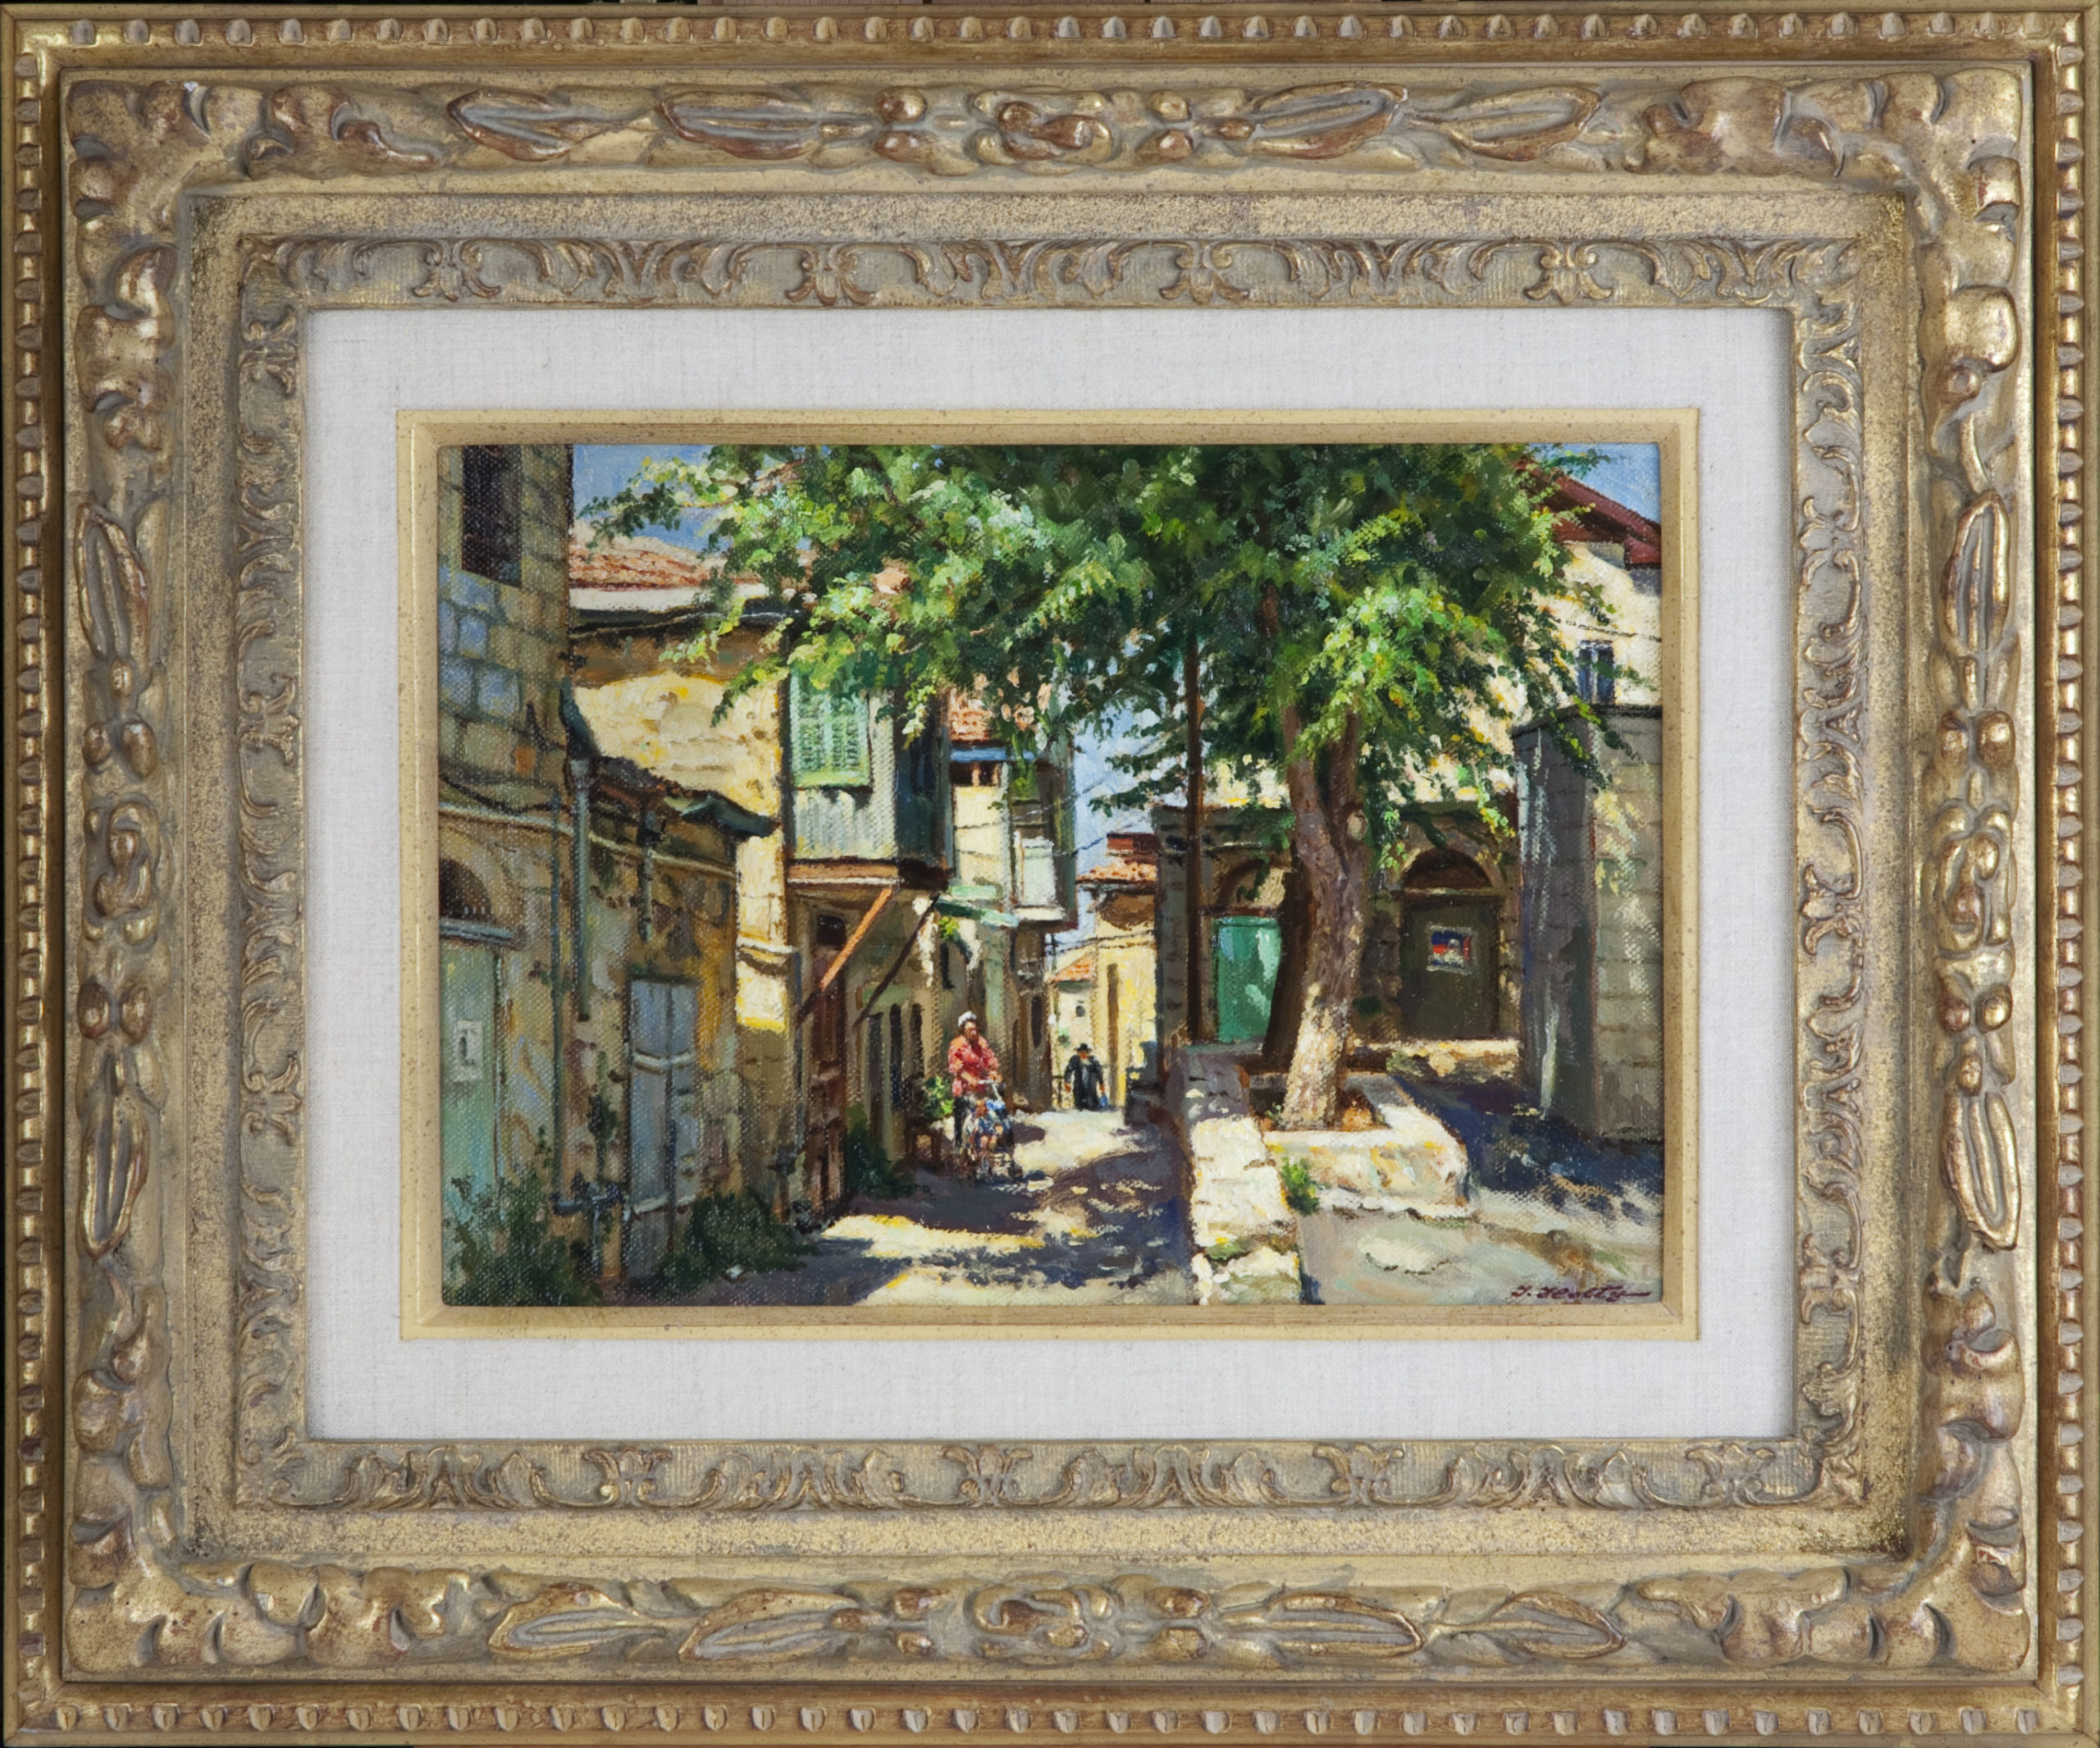 185 Jerusalem Light 1996 - Oil on Masonite - 14 x 9.75 - Frame: 23.5 x 19.5 x 2.25